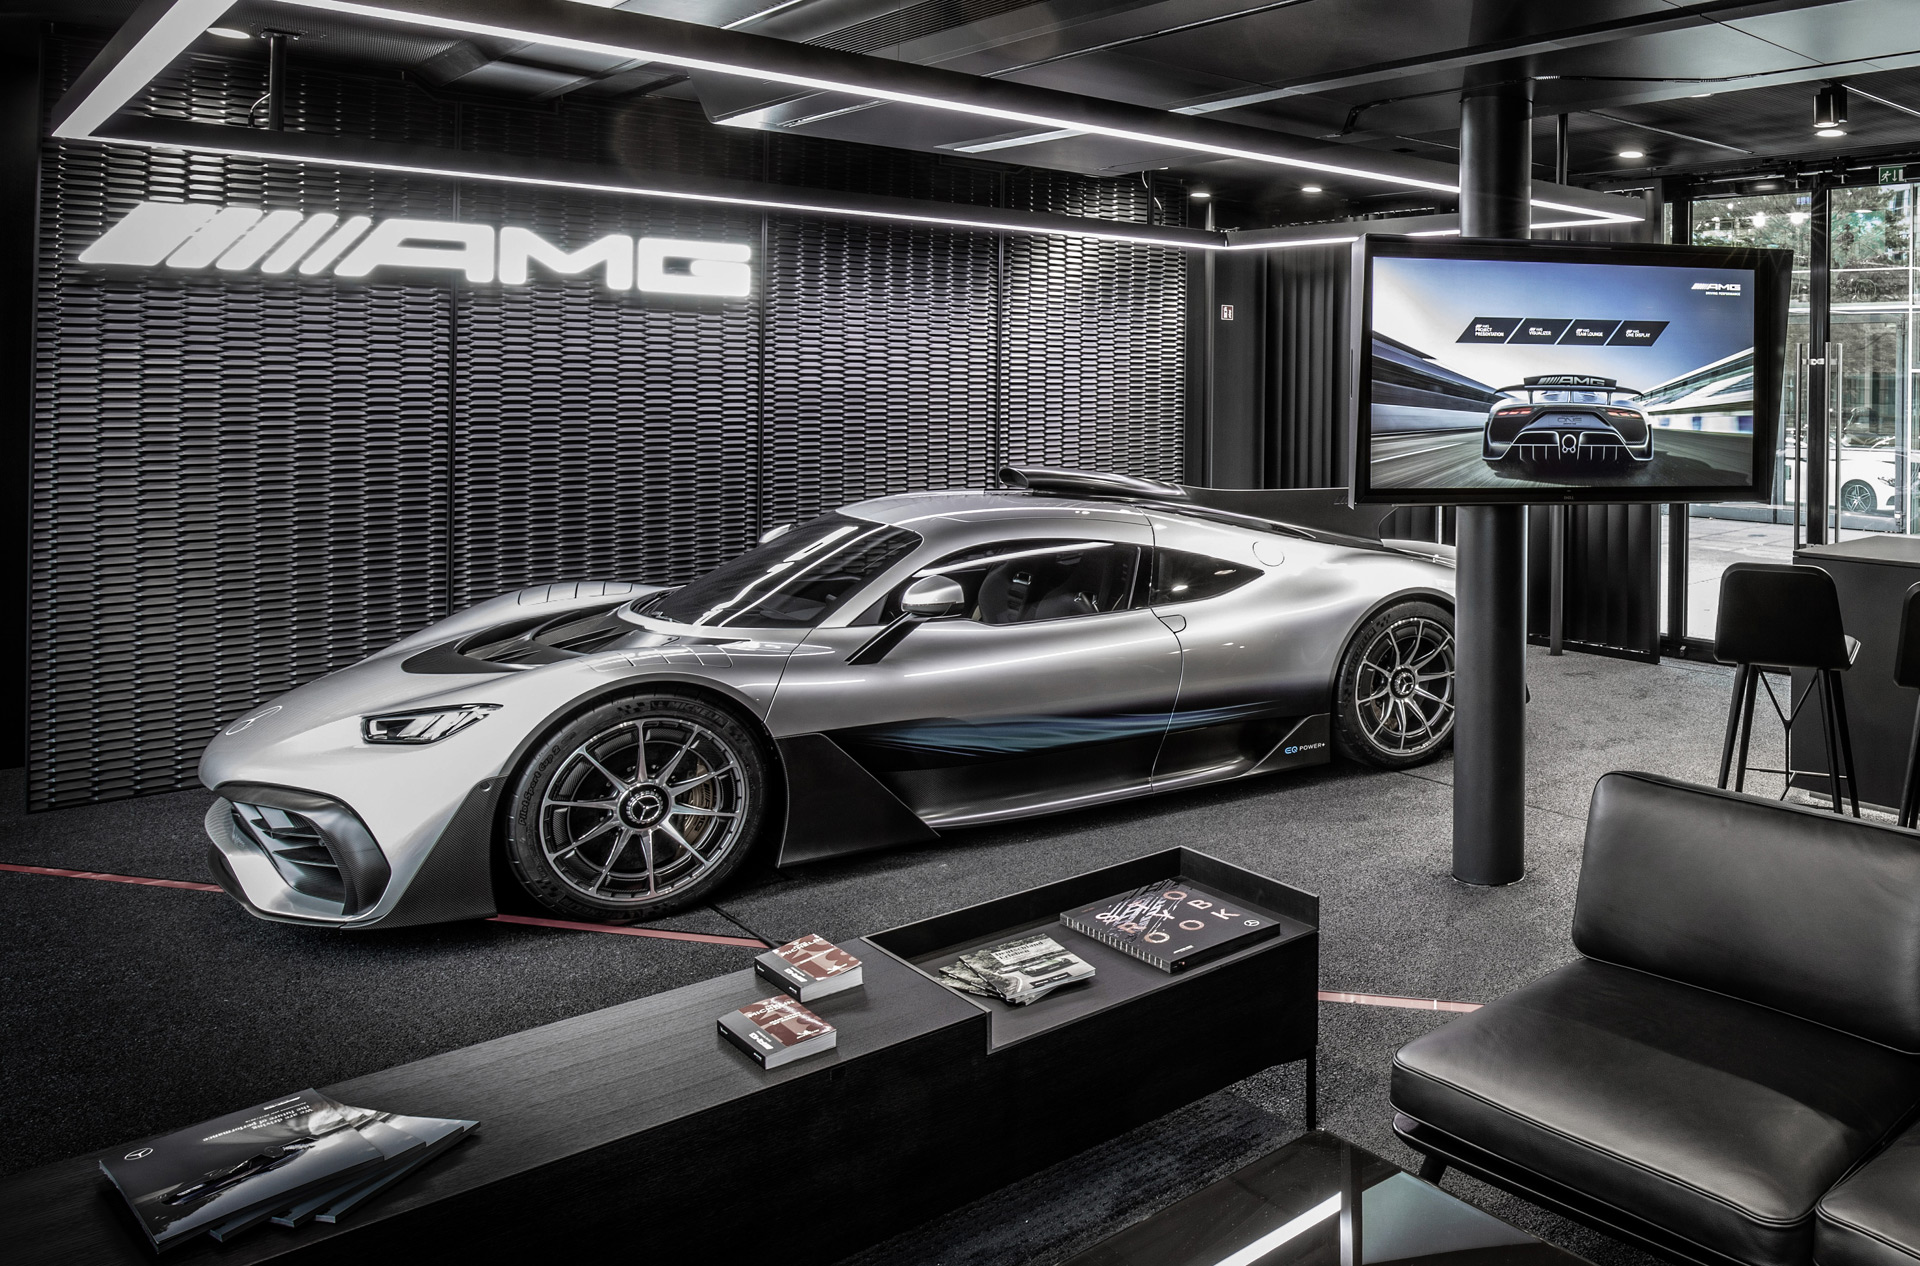 mercedes amg one confirmed as name of f1 powered hypercar. Black Bedroom Furniture Sets. Home Design Ideas